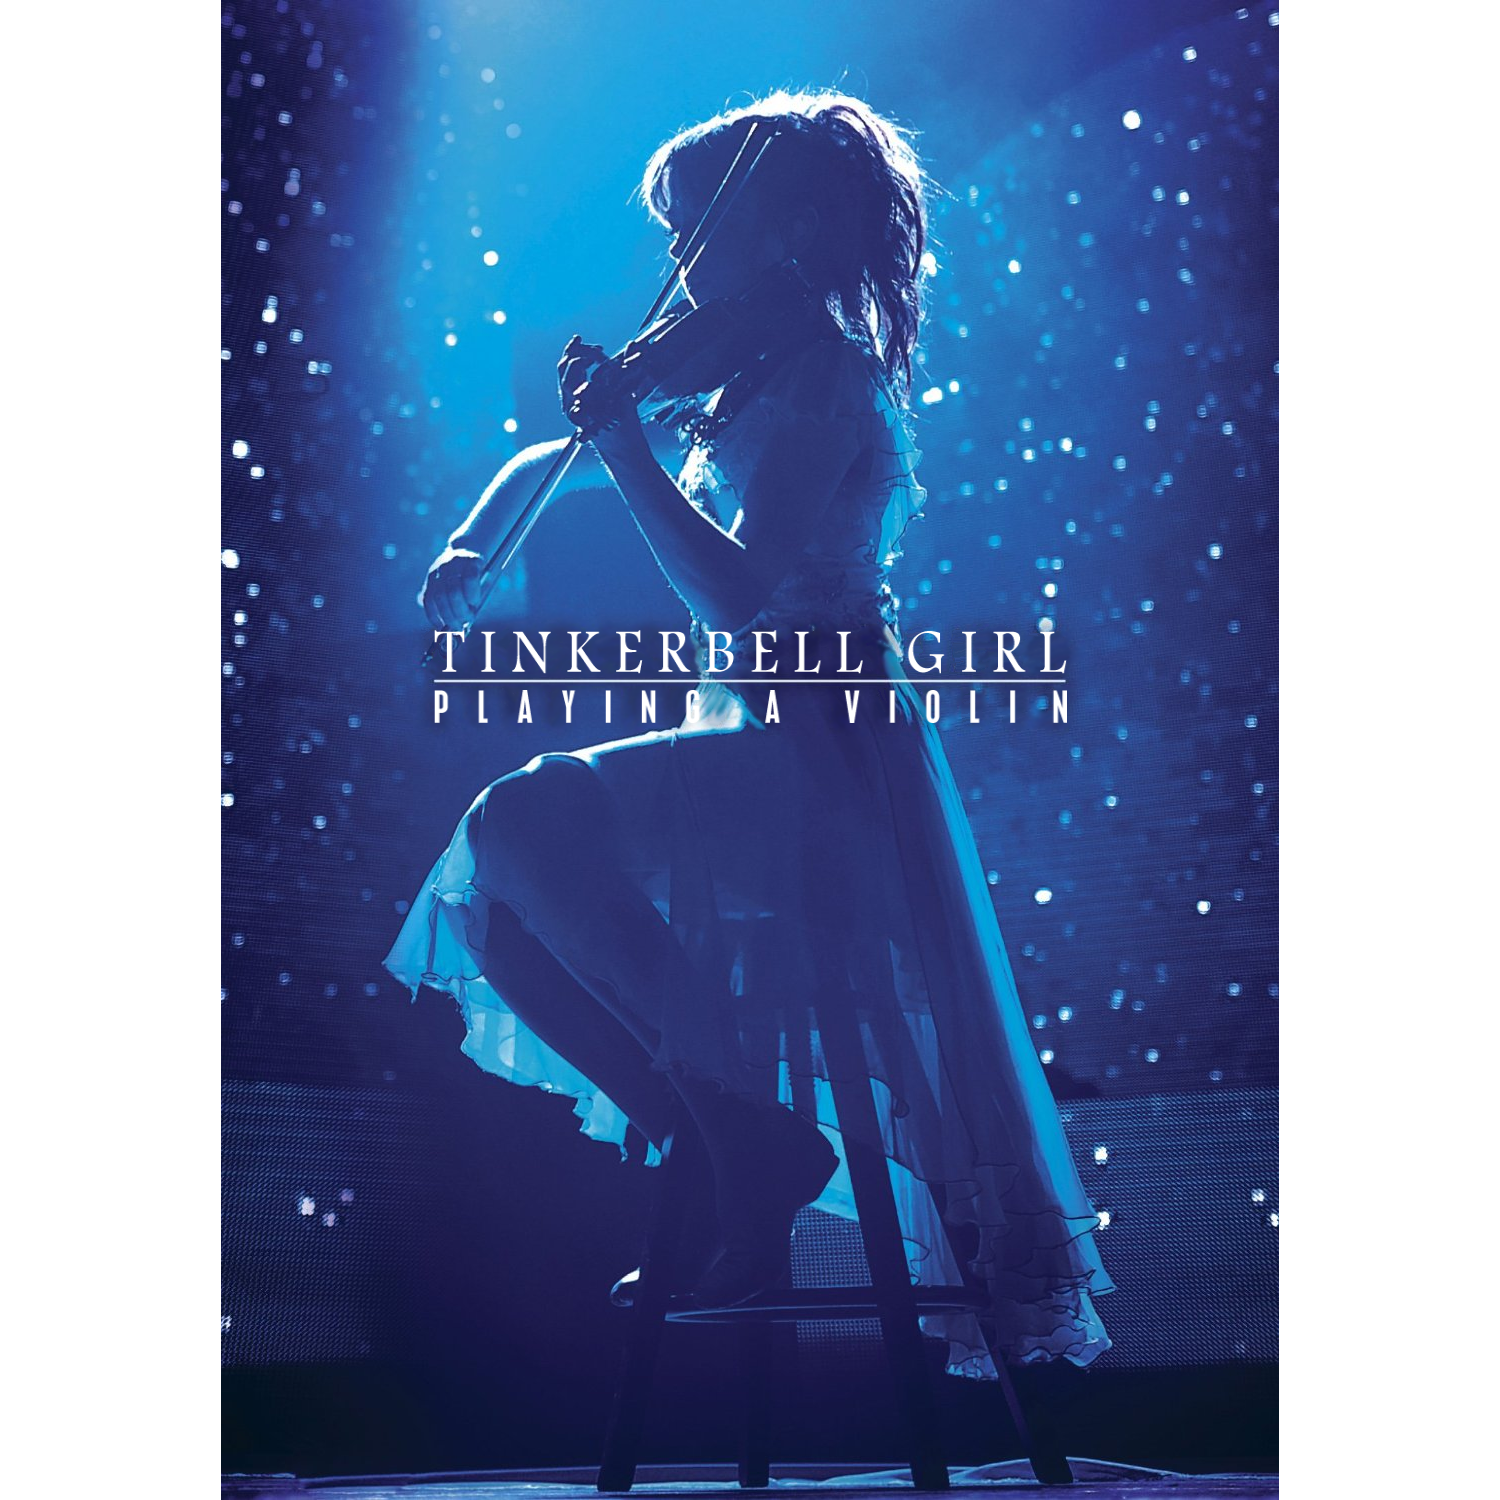 Album cover parody of Live From London by Lindsey Stirling